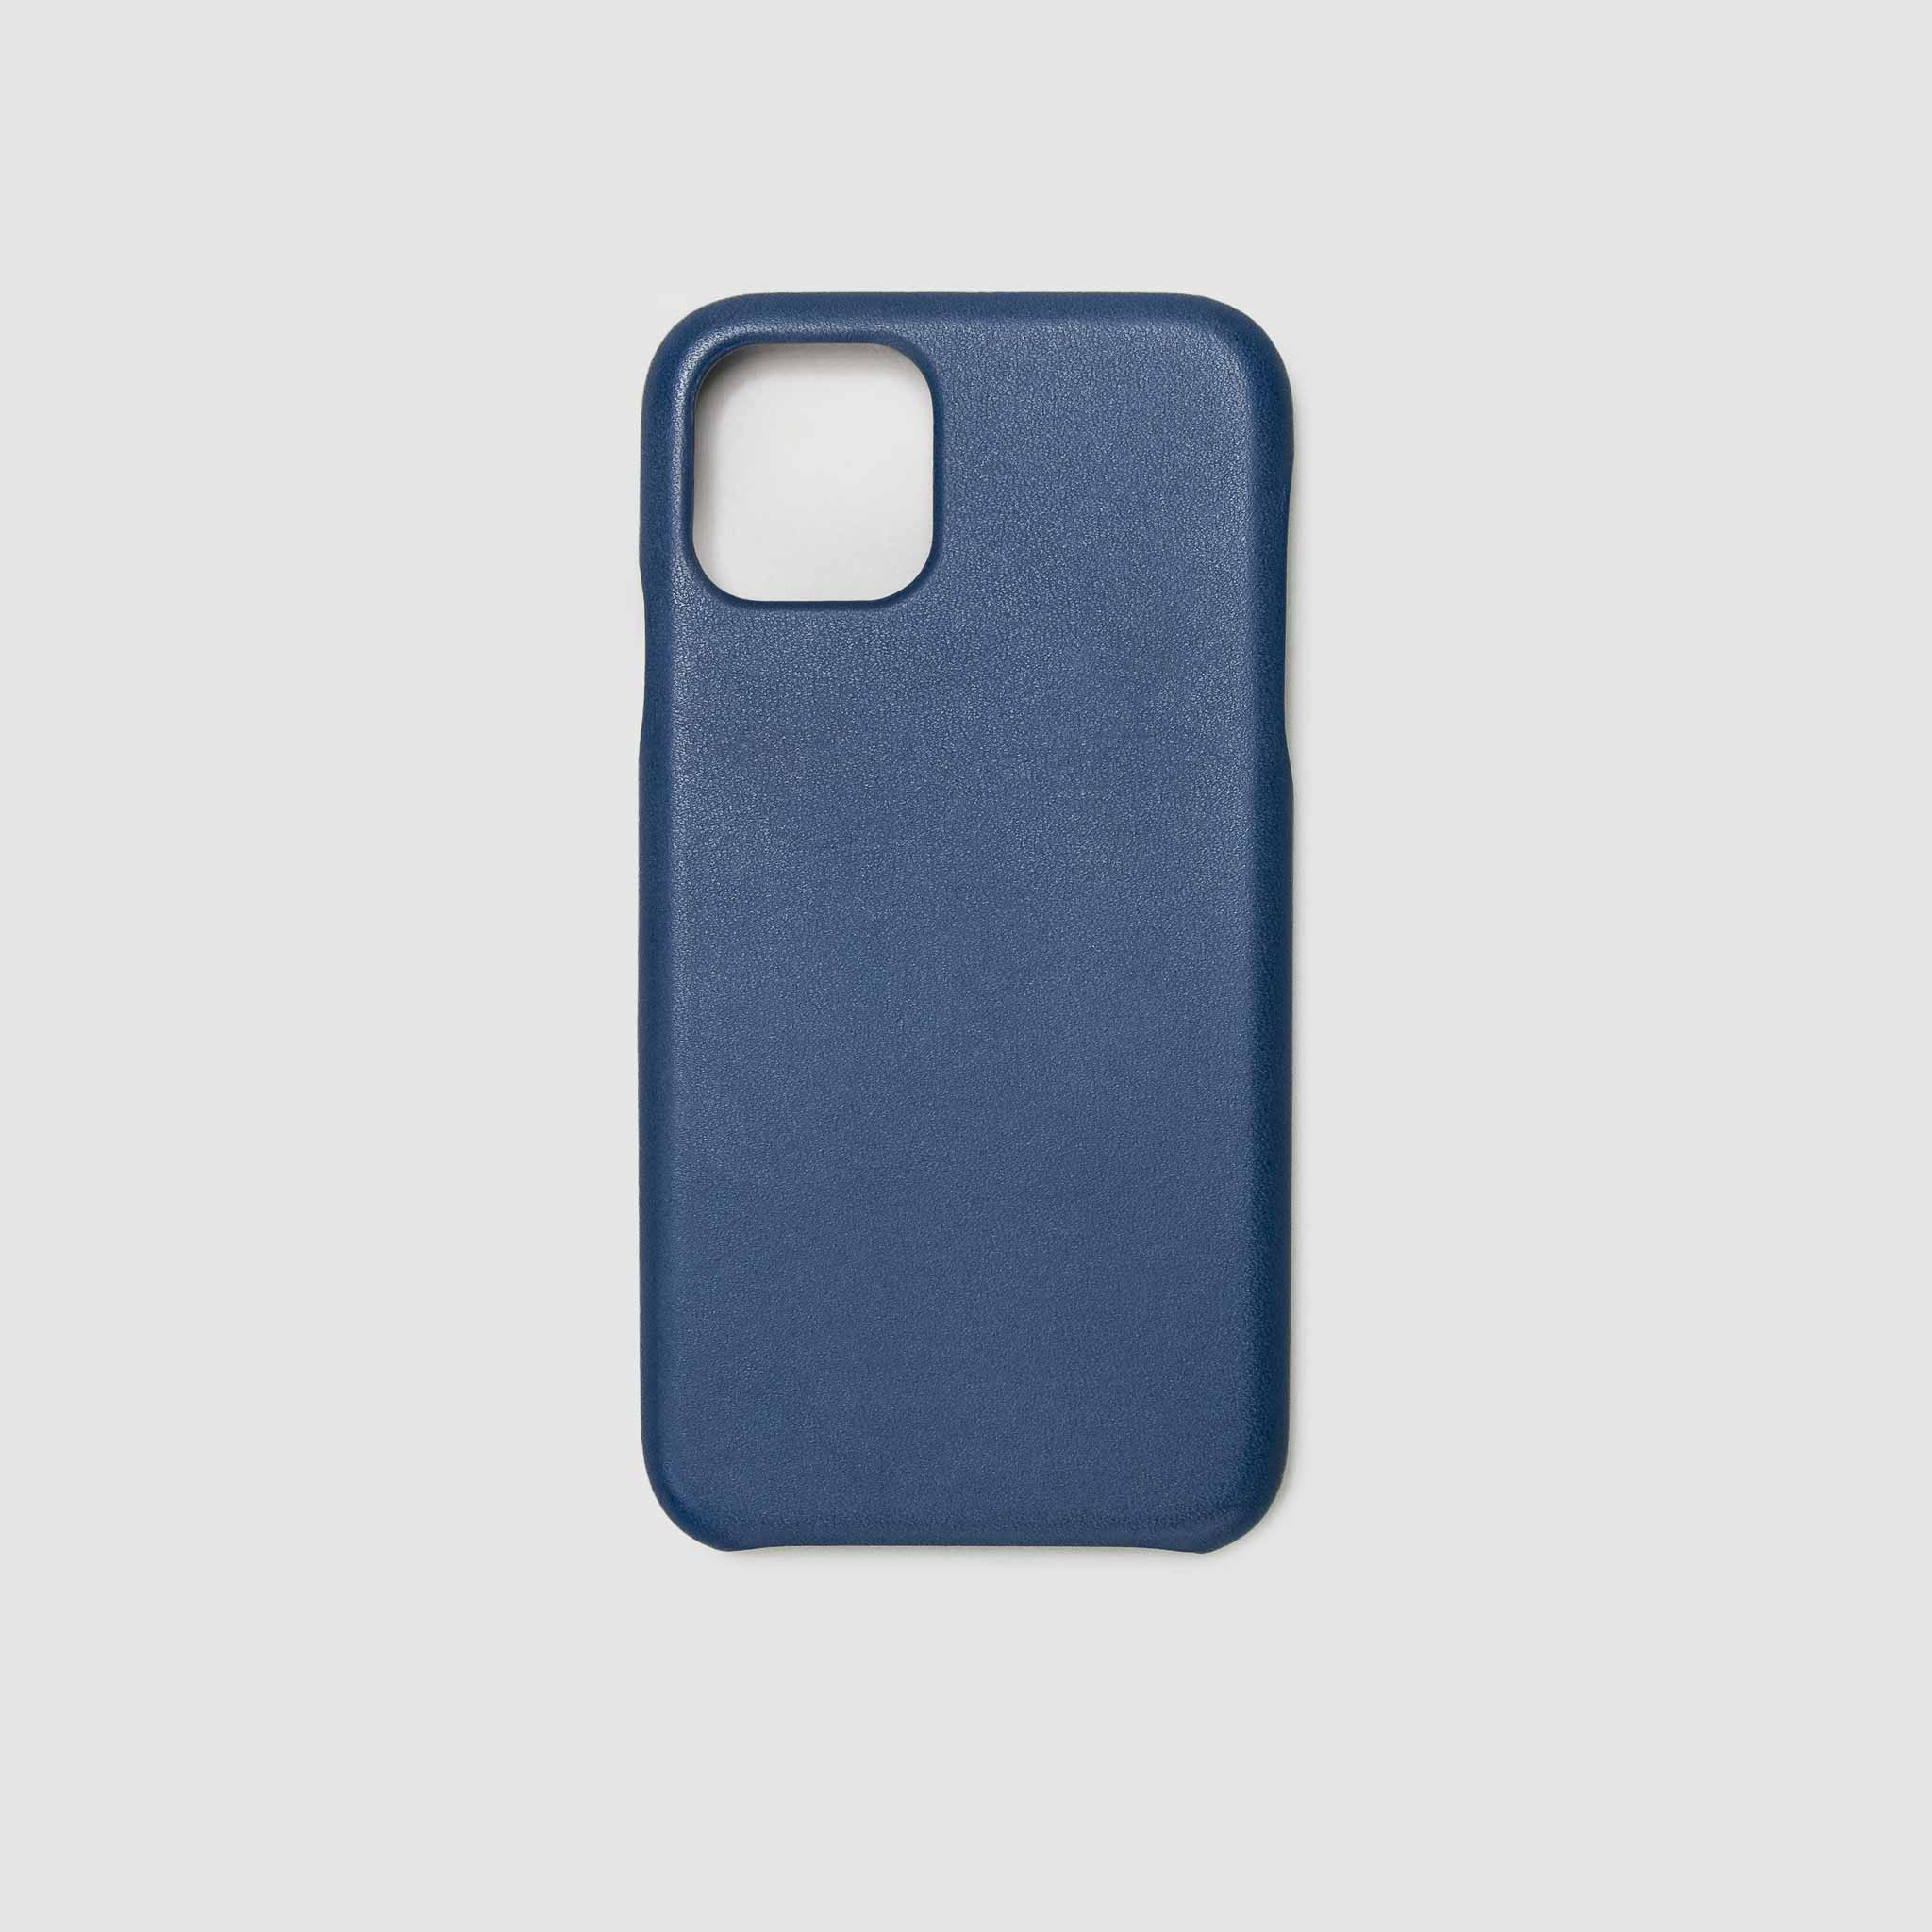 anson calder iphone case french calfskin 11 eleven pro max leather  !iphone11pro-iphone11promax  _cobalt